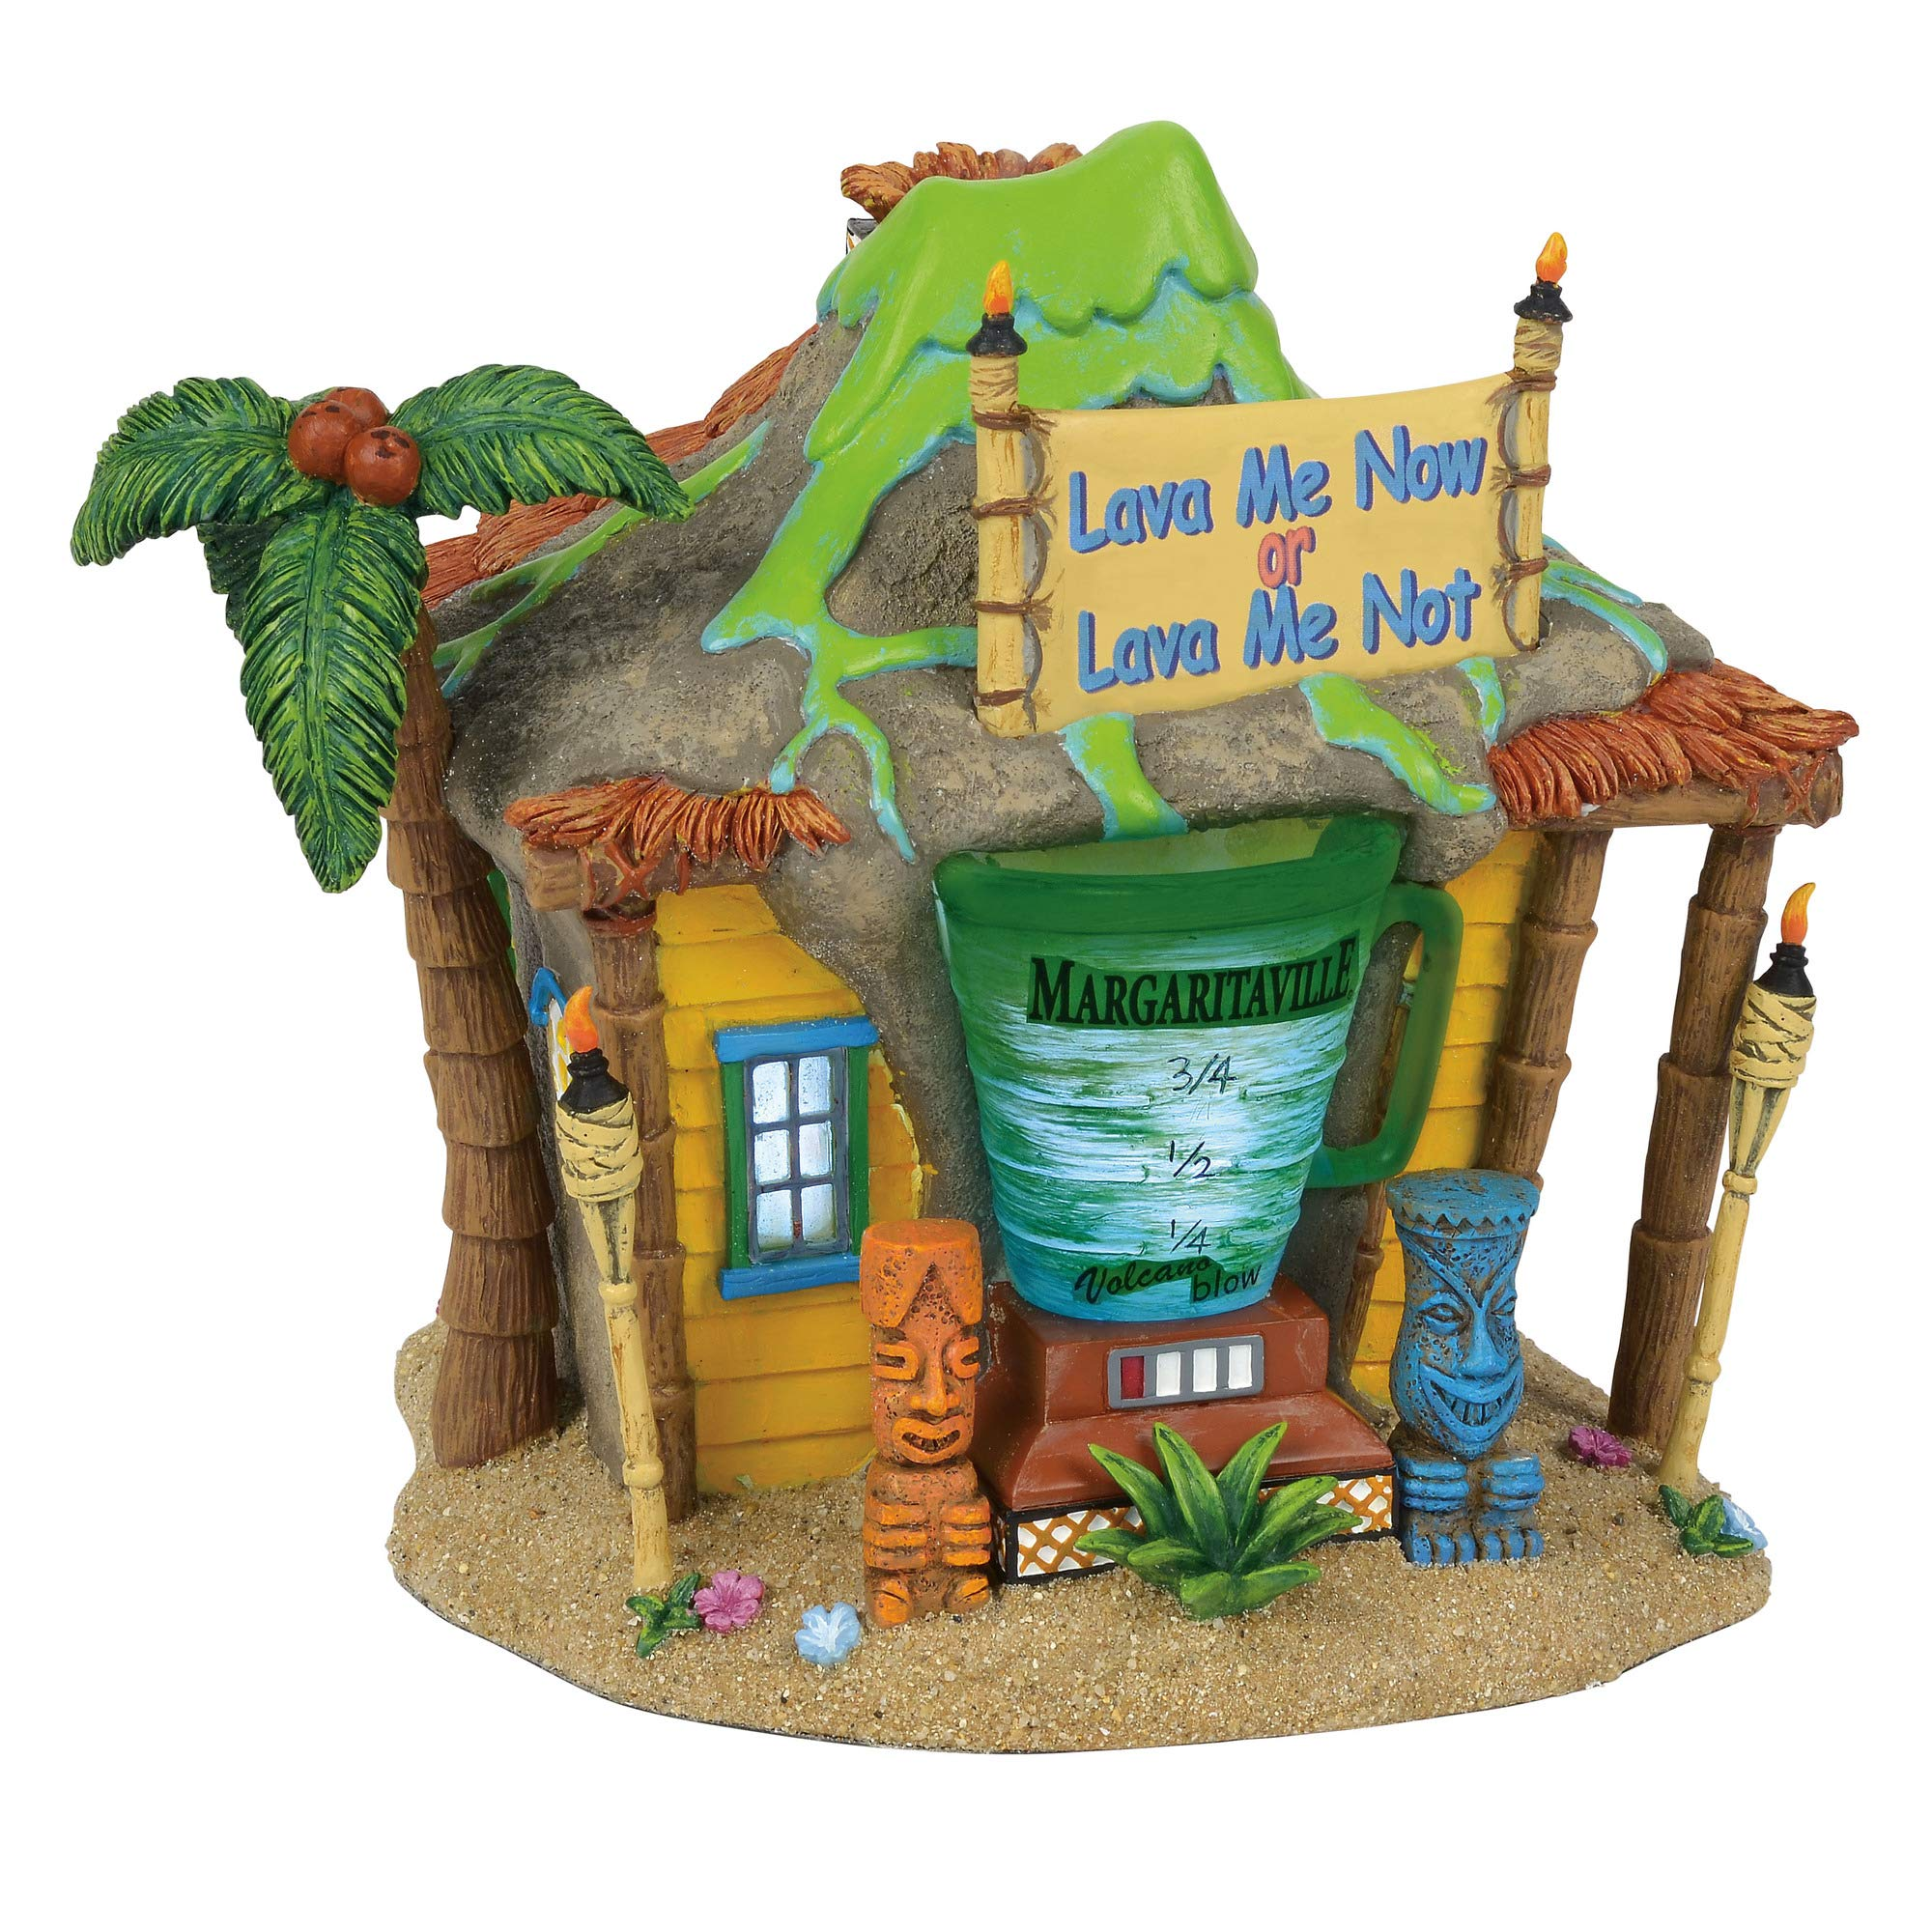 Department 56 Margaritaville Village Volcano Club Lit Animated Building, 9'', Multicolor by Department 56